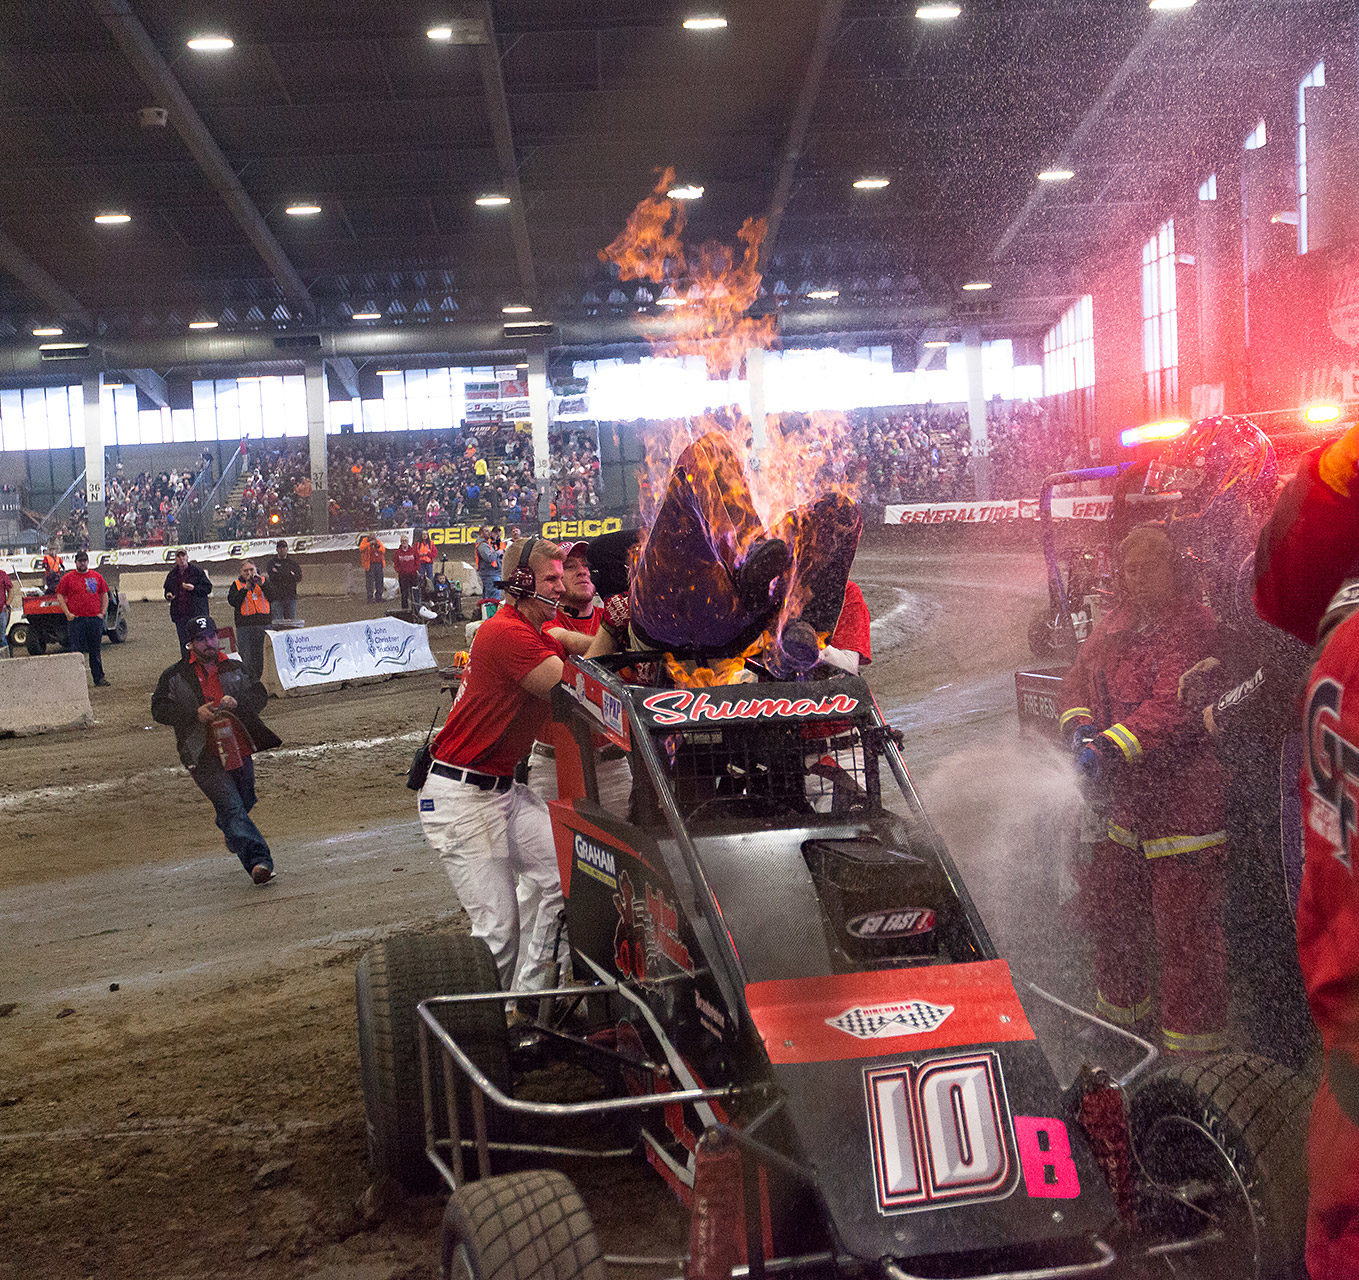 Saturday January 14, TULSA, Oklahoma - With Rick Shuman set ablaze, courageous Lucas Oil track staff rip him from the car, saving the driver from serious injury ( Jeffrey Turford / TDP )